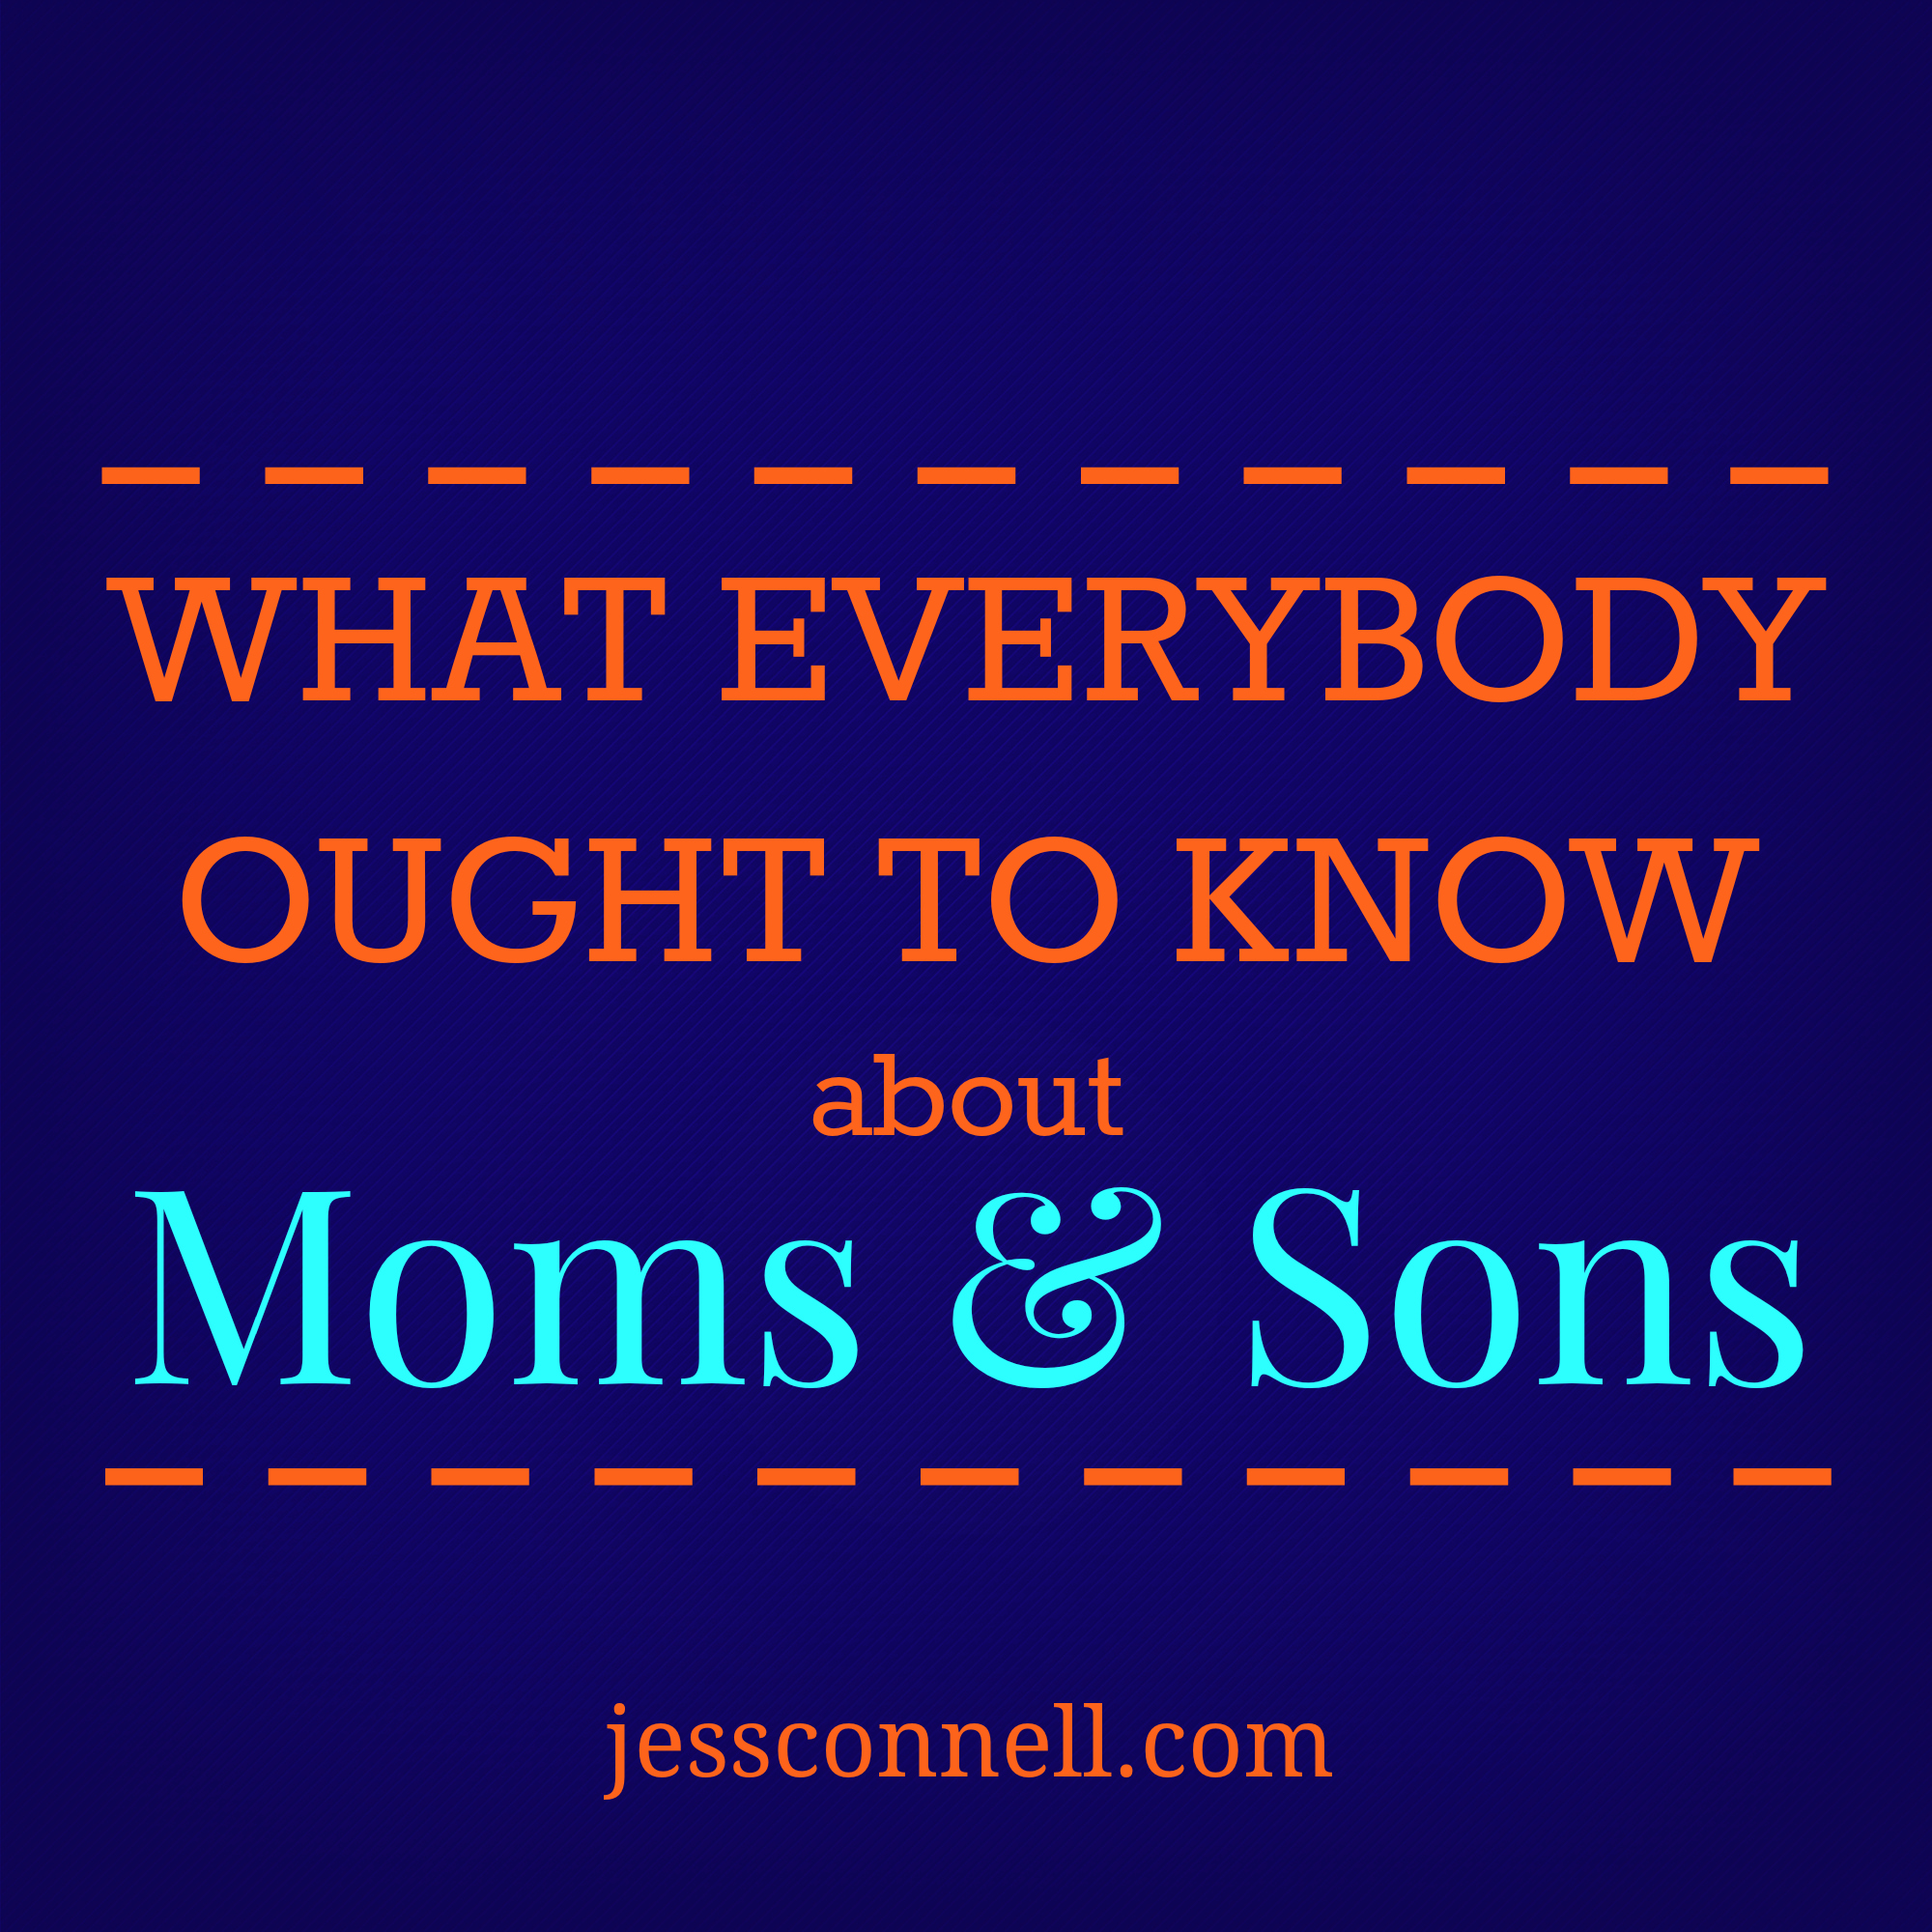 What Everybody Ought to Know about Moms & Sons // jessconnell.com // Facebook memes lie to us. The Bible tells us the truth. Here's what everybody ought to know about the relationship between moms & sons.